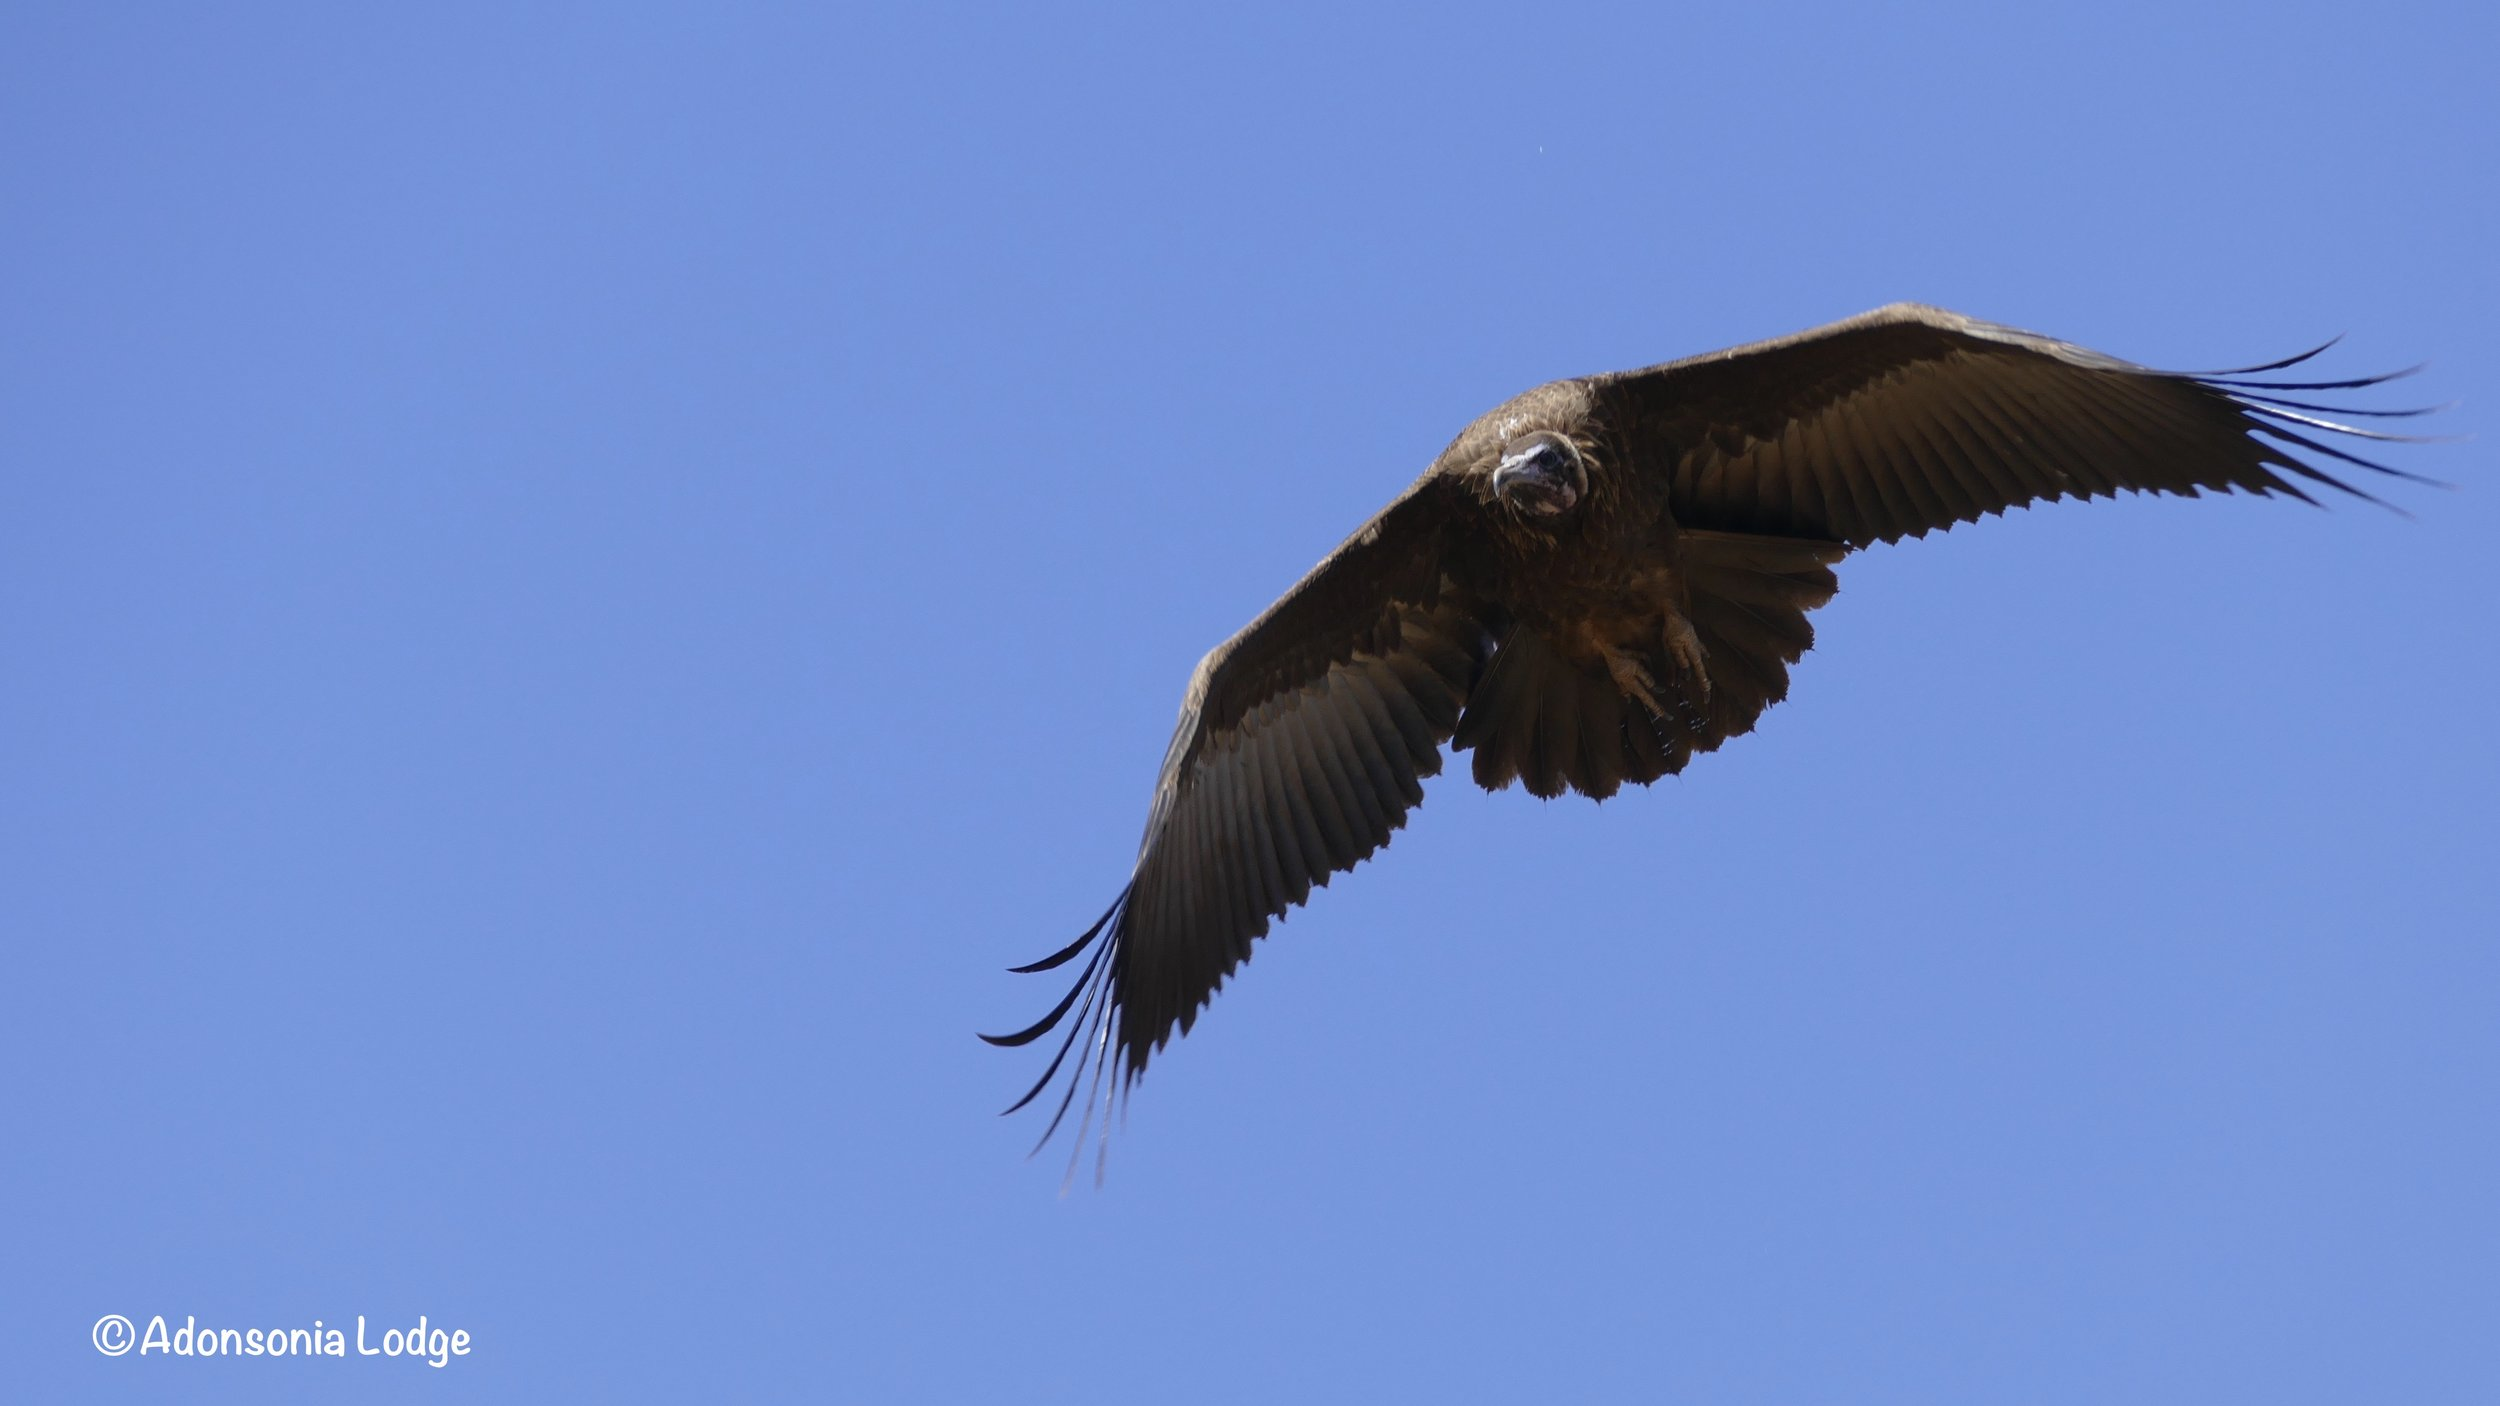 With so many vultures flying around the chances of getting a good shot were fairly high ;)  Did you know that a group of vultures in flight is called a kettle of vultures?